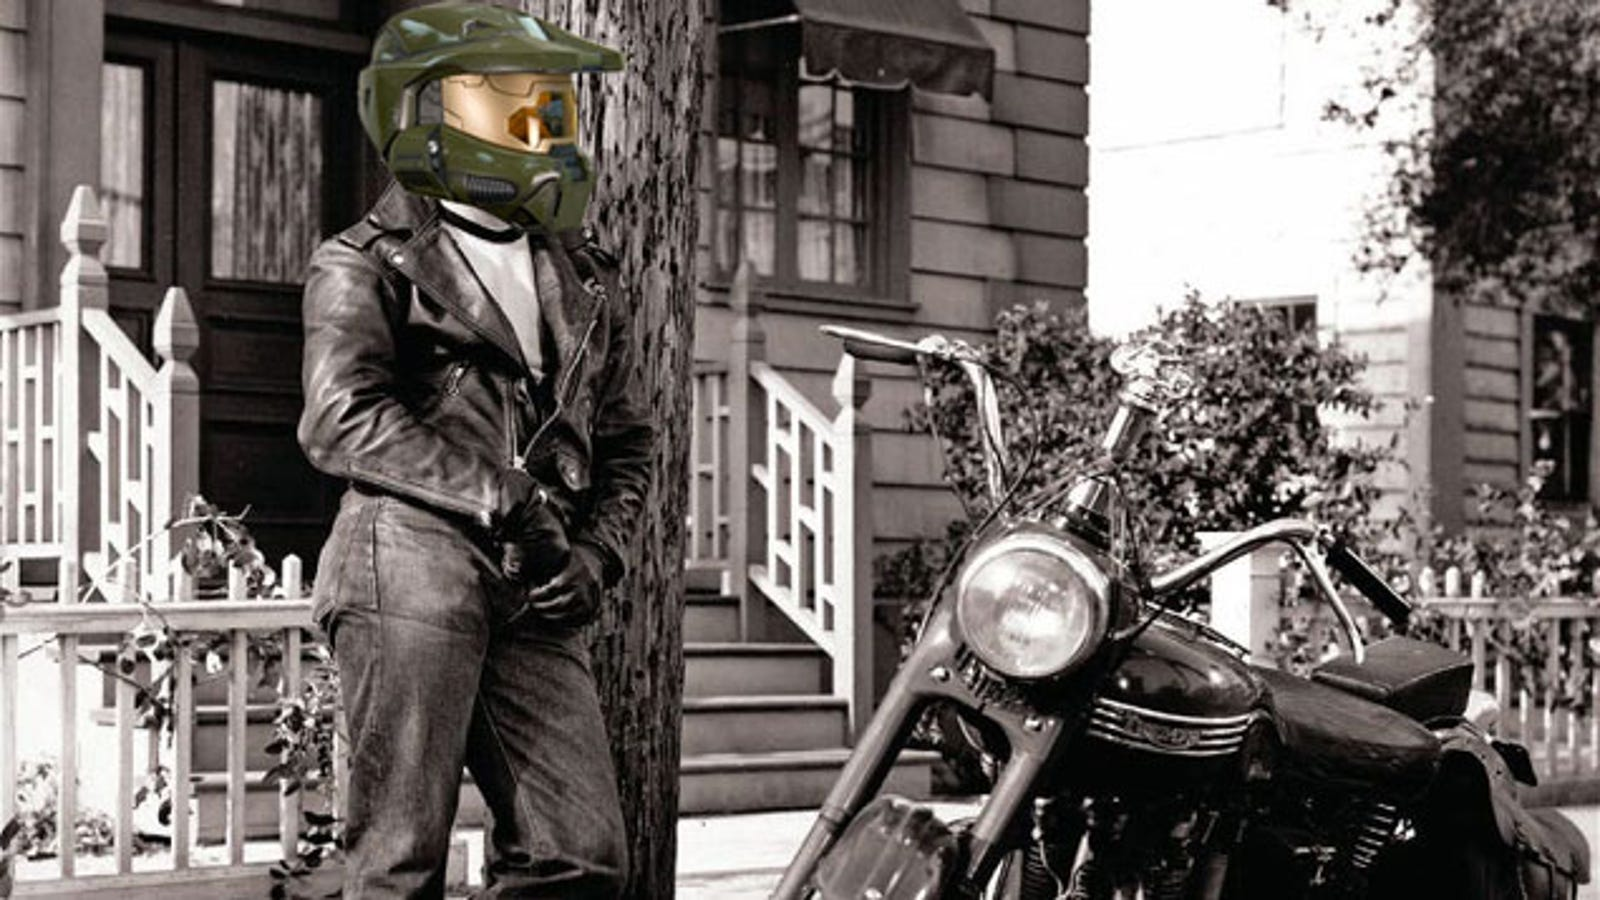 LUPE: Master chief halo cock